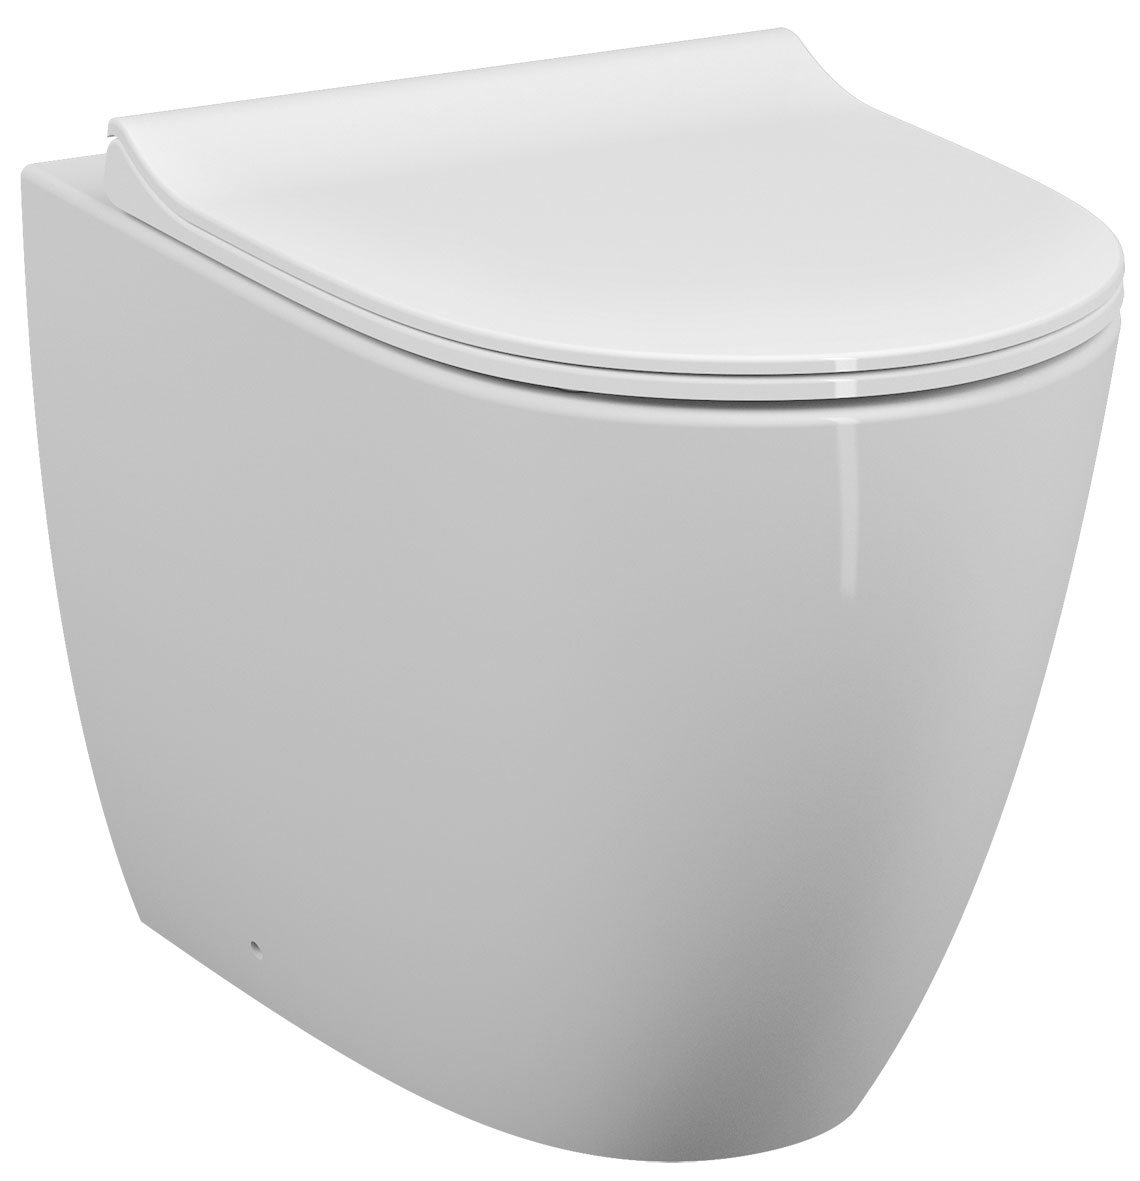 click on Sento Rimless Wall Hung WC image to enlarge